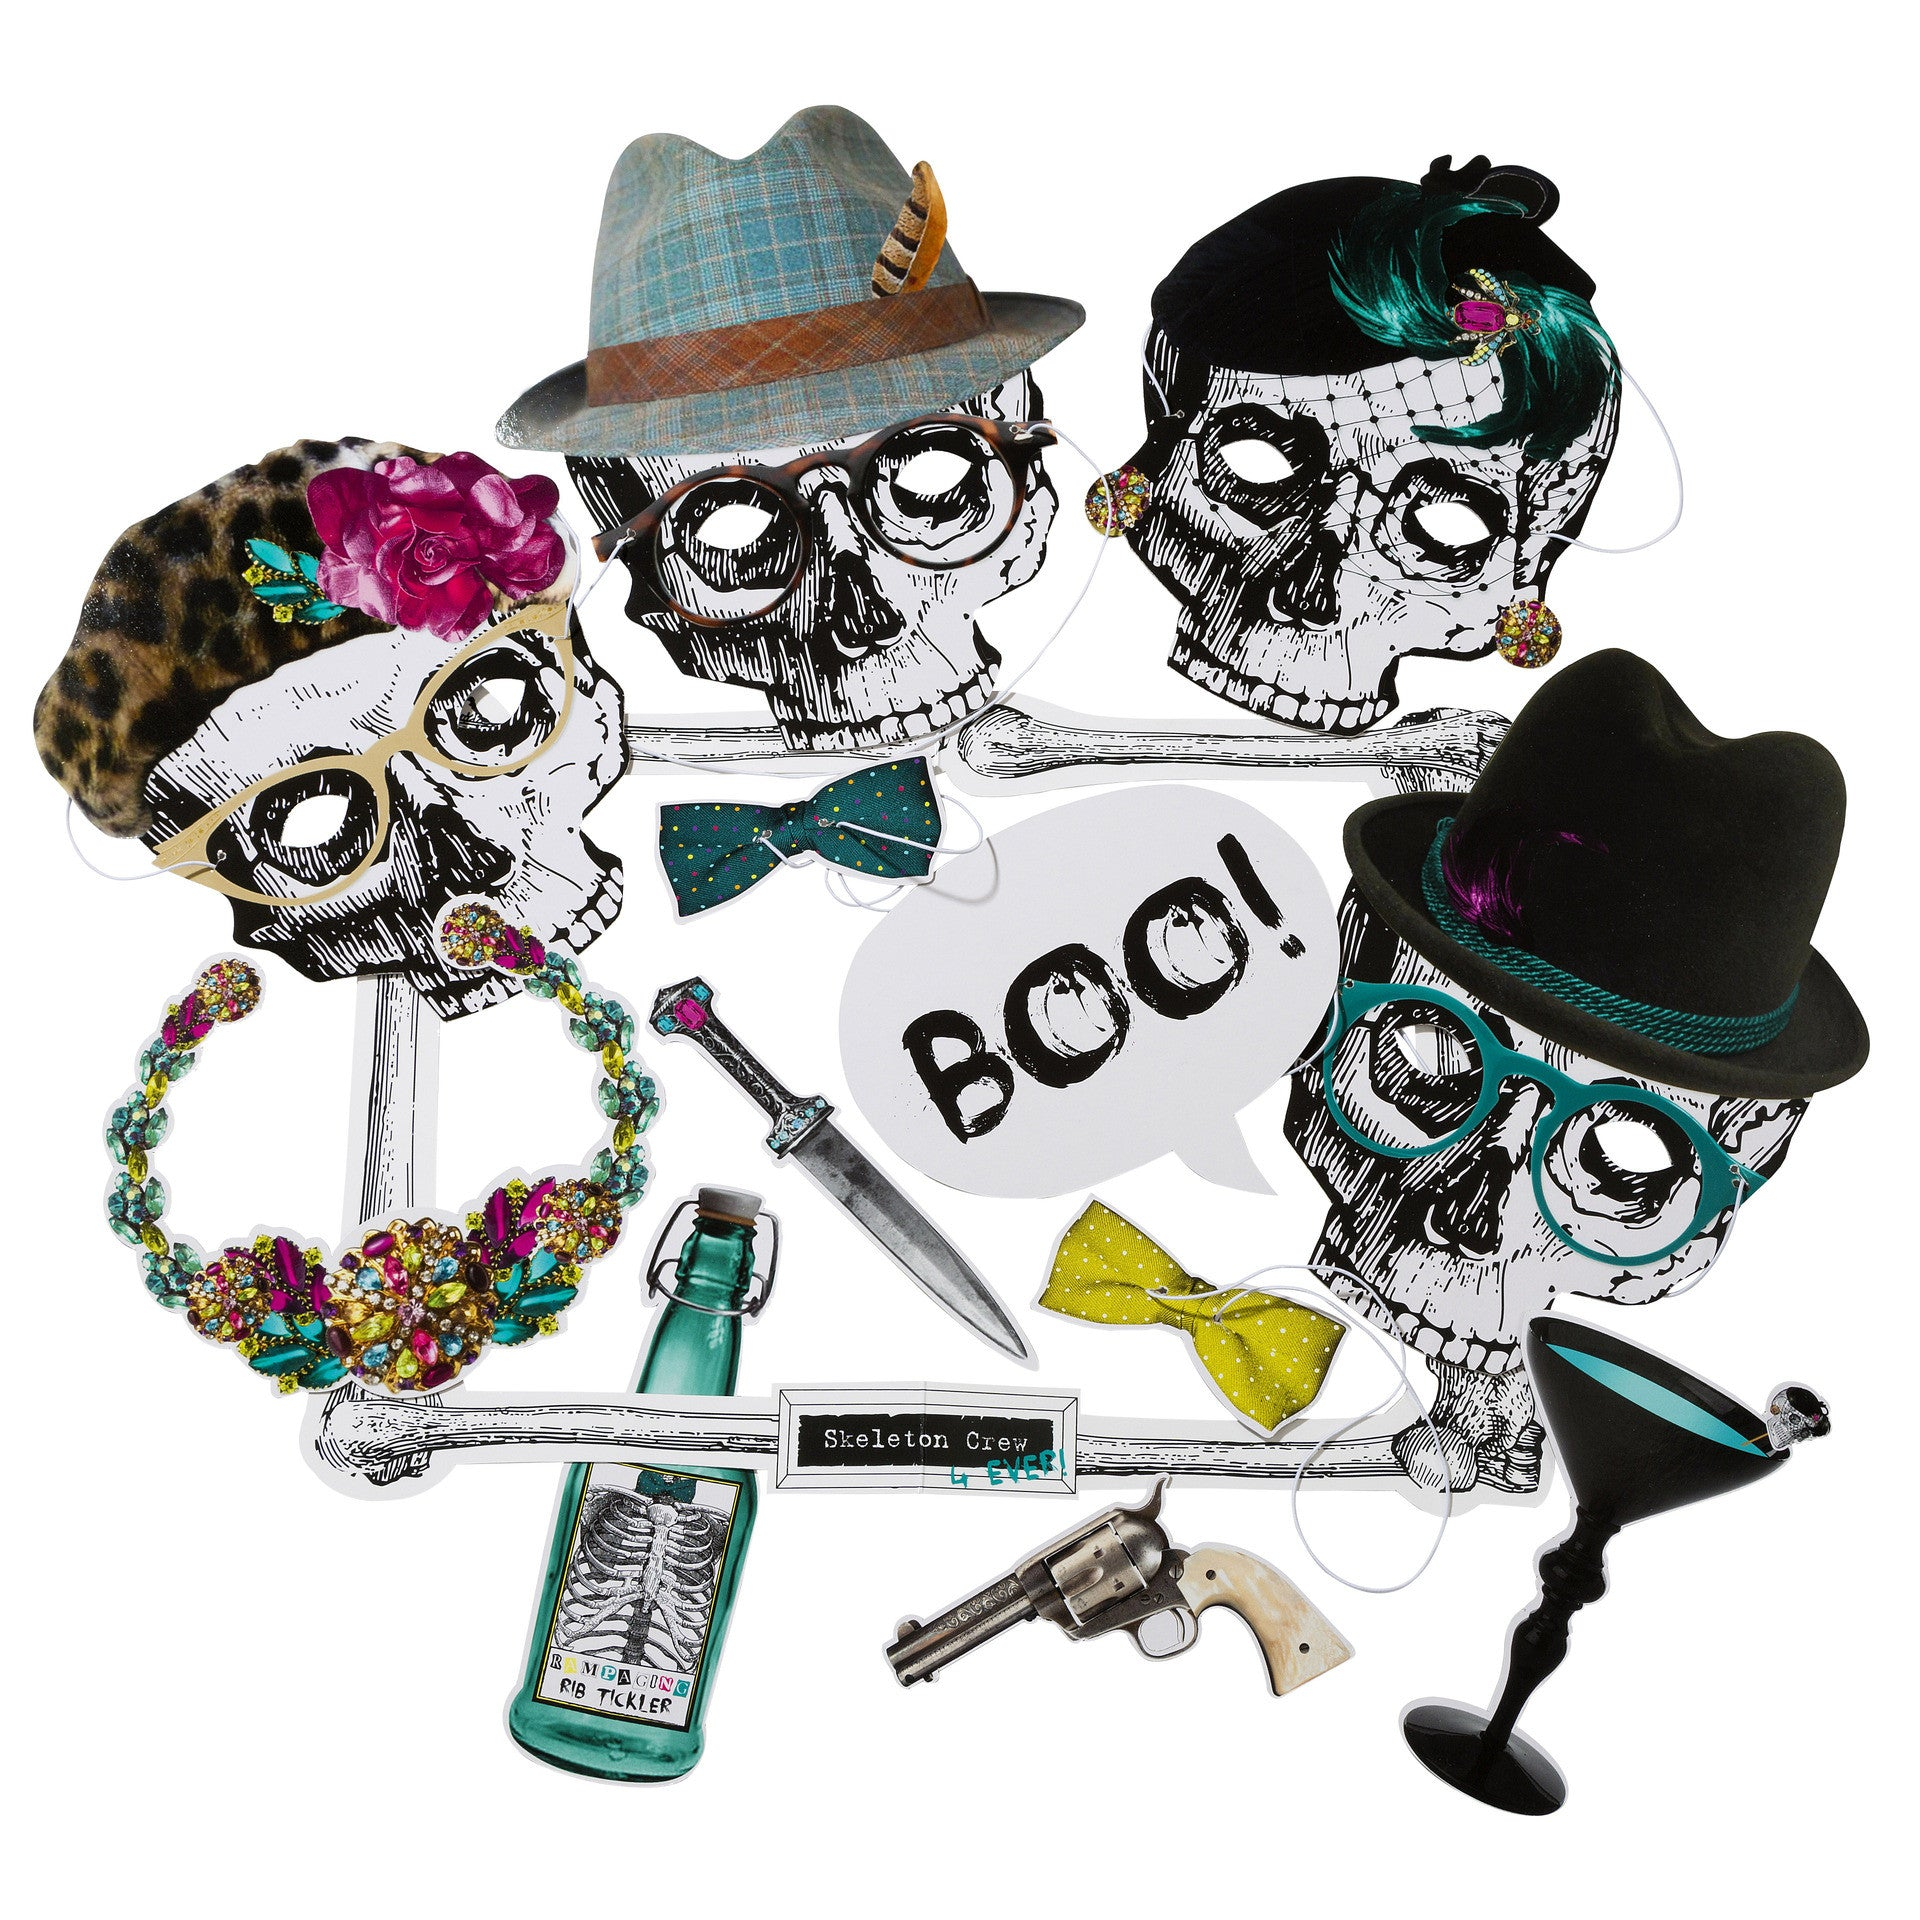 SKELETON CREW PHOTO BOOTH PROPS from www.popcloud.co.uk who offer a huge range of fancy dress costumes and partyware items